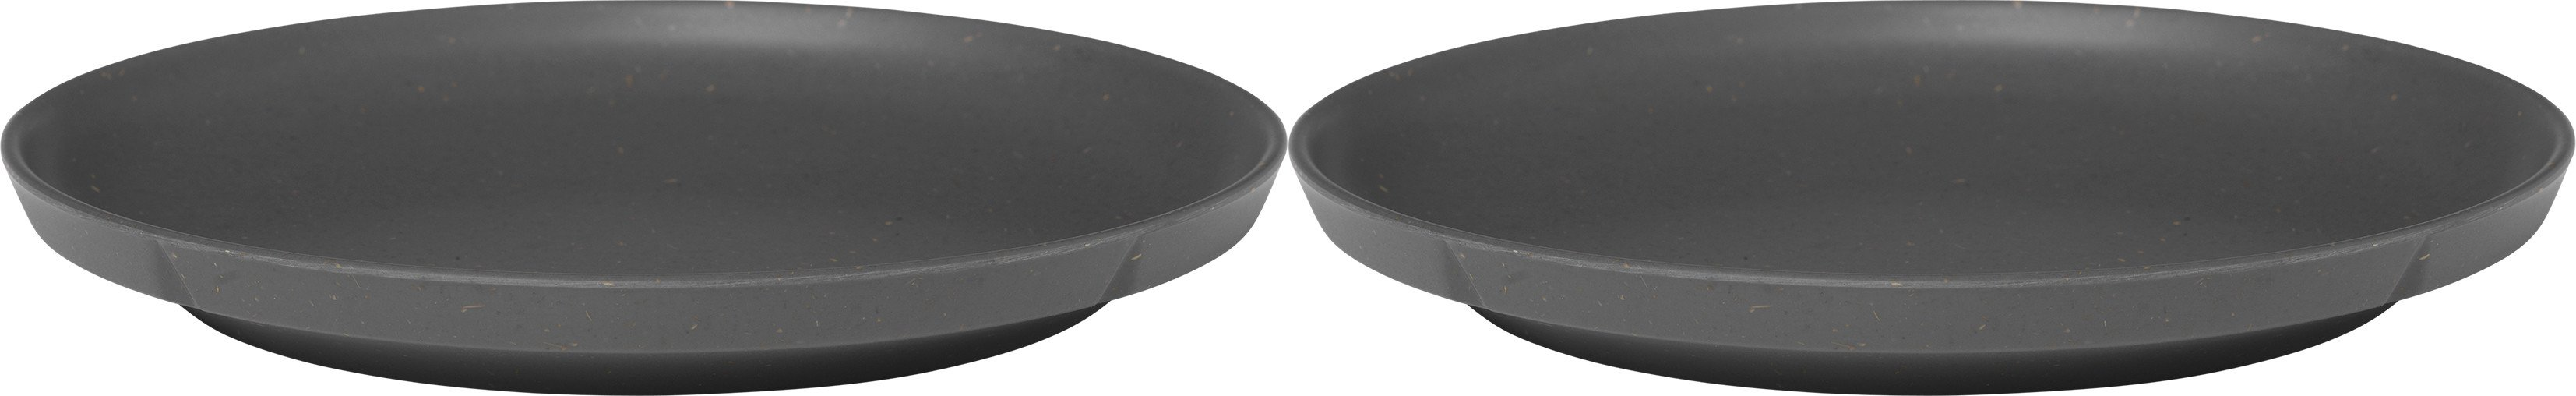 Grand Cru Take Plate 2 pcs. Ø19.5 cm Dark Grey, Rosendahl